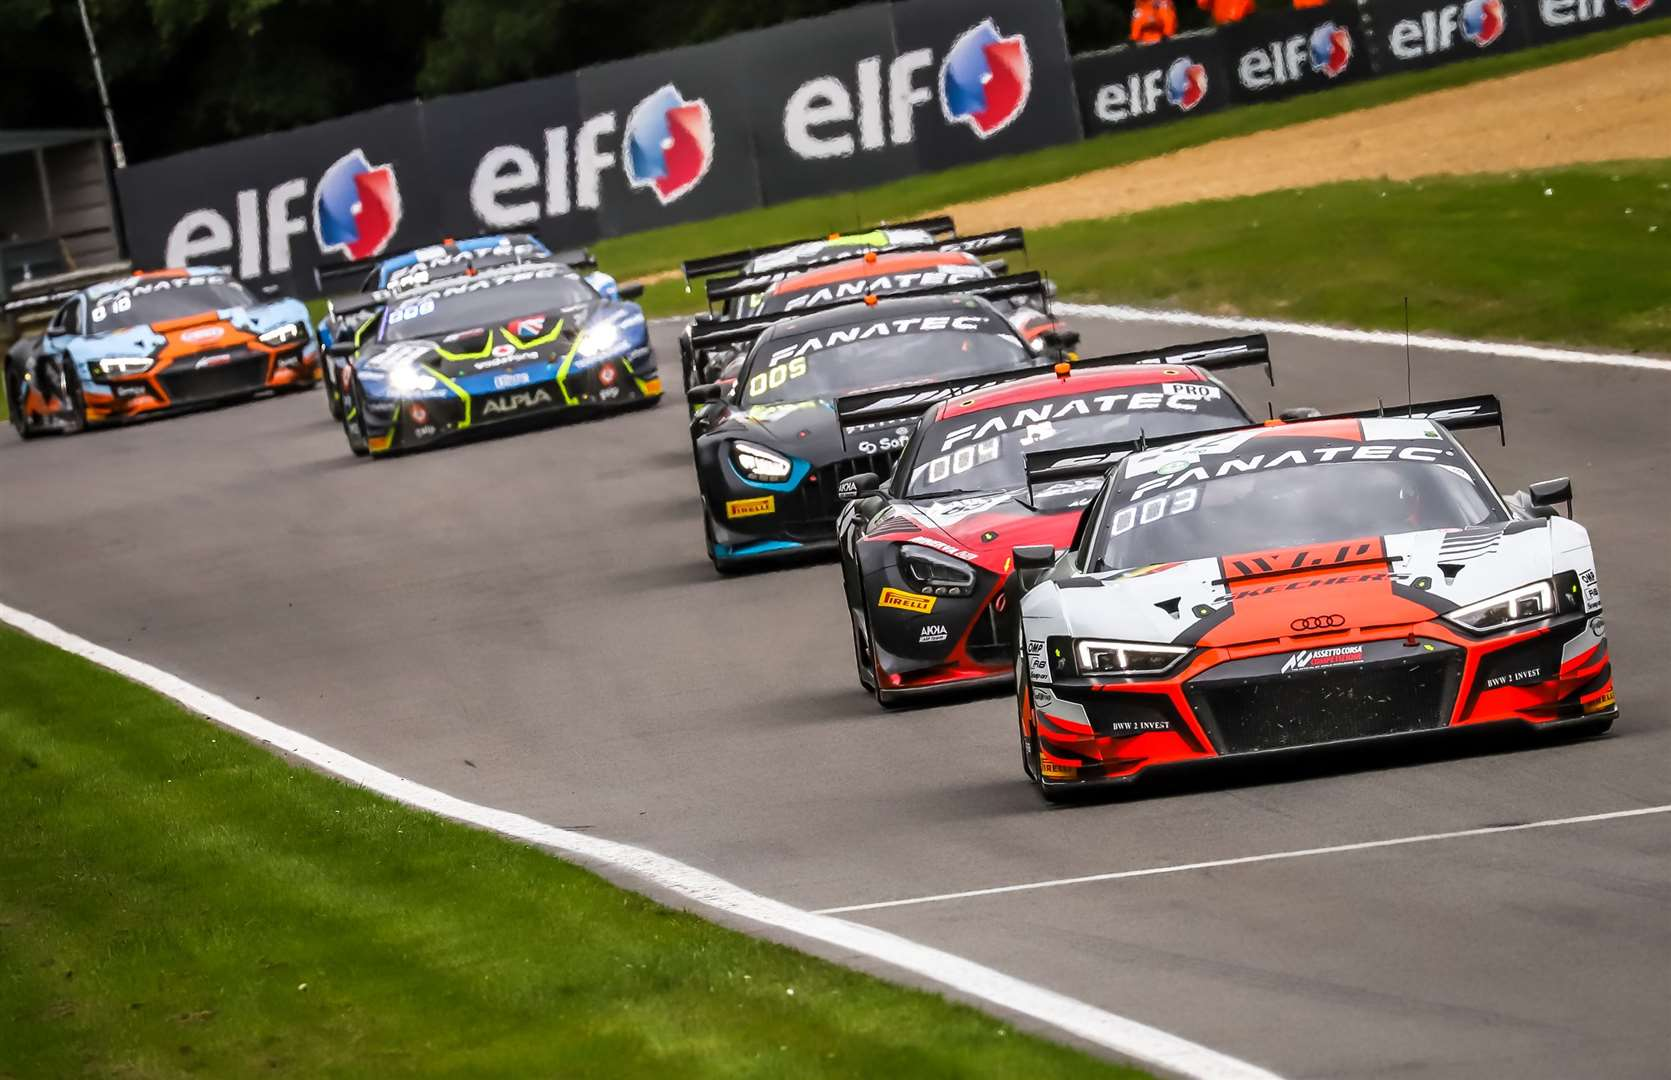 The Team WRT Audi crew of Dries Vanthoor and Charles Weerts claimed the title on Sunday – WRT's eighth Sprint Cup crown. Picture: SRO